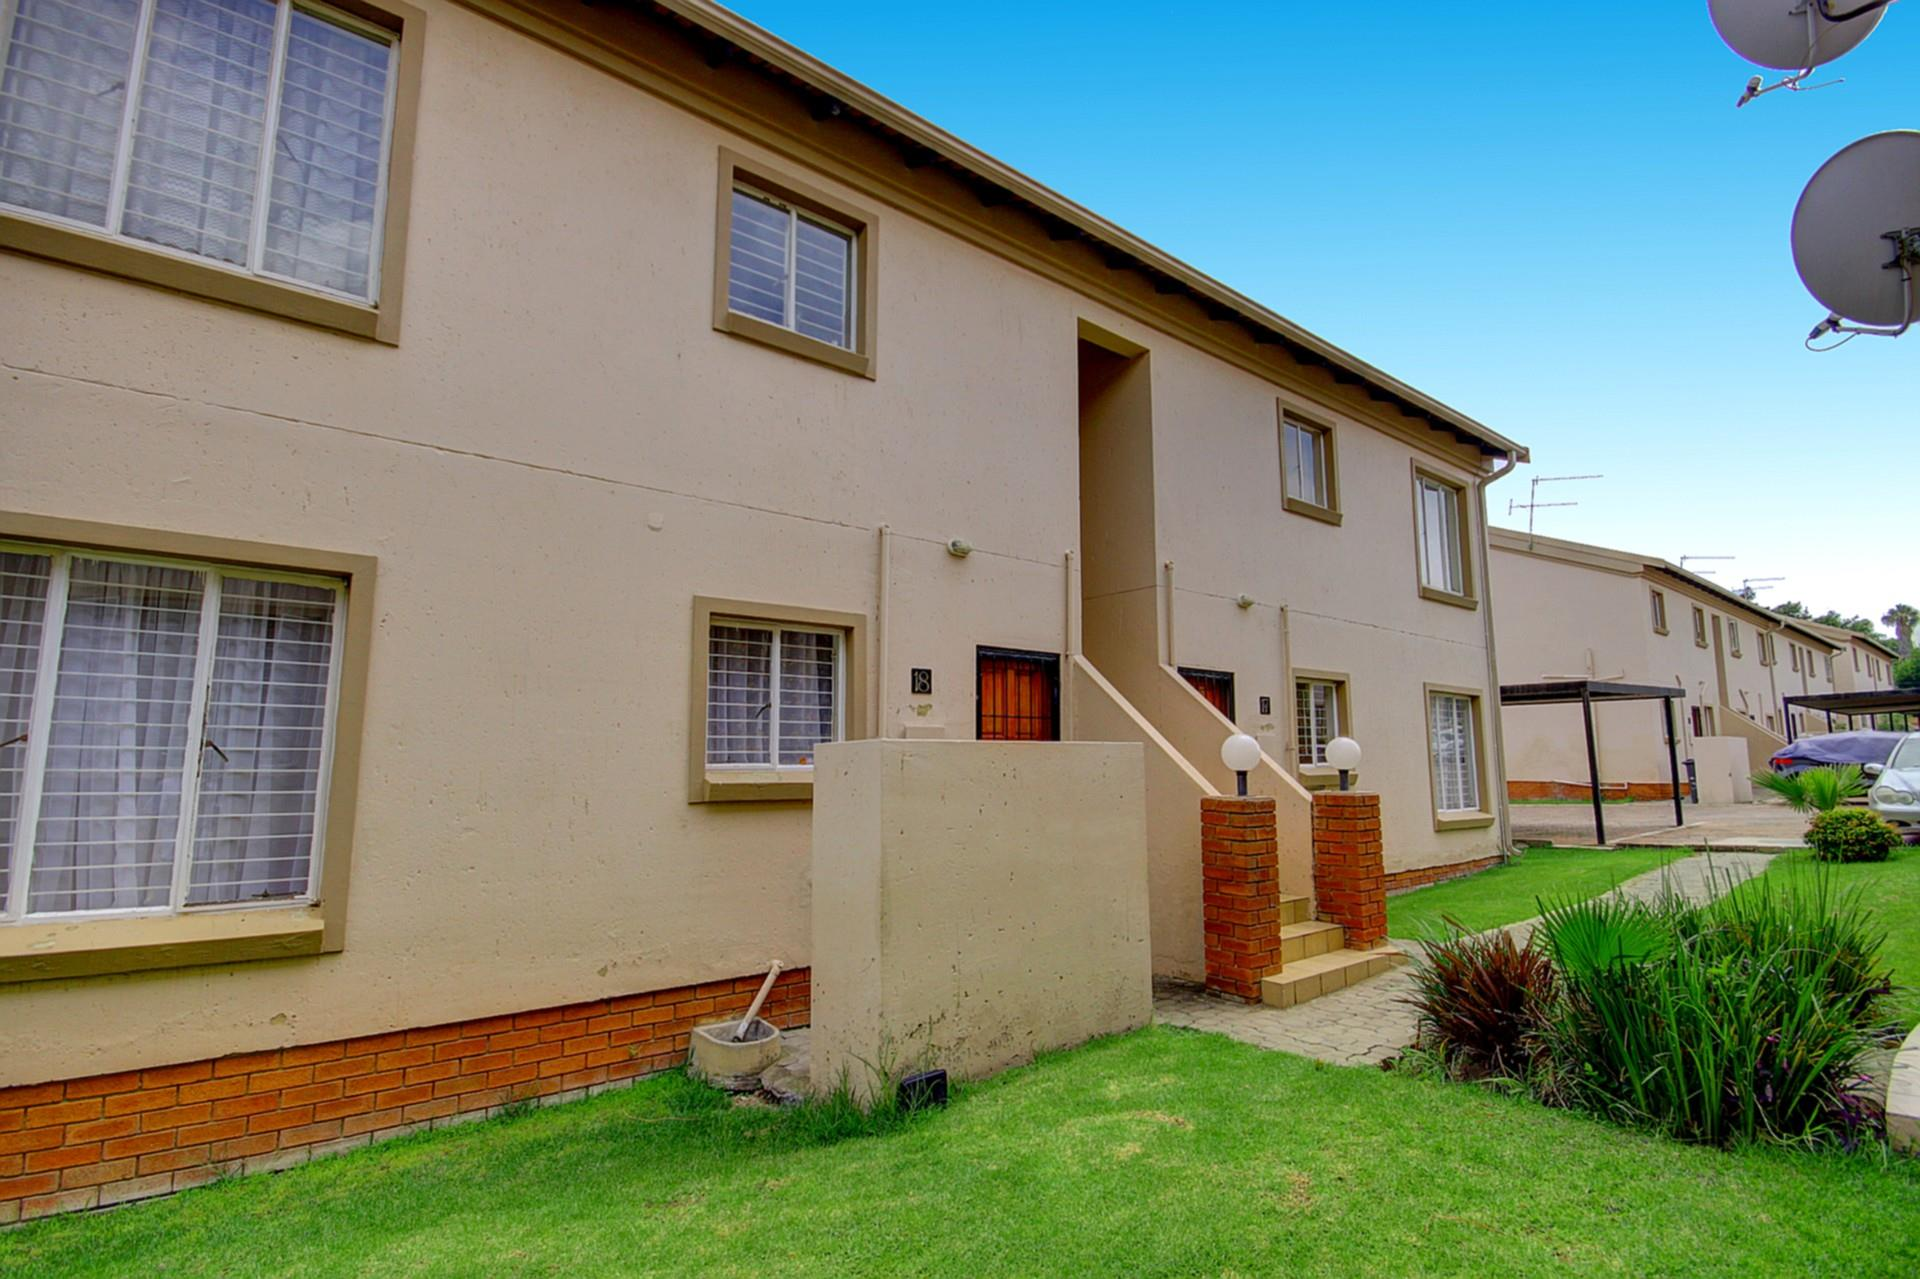 2 Bedroom Apartment / Flat For Sale in Ferndale